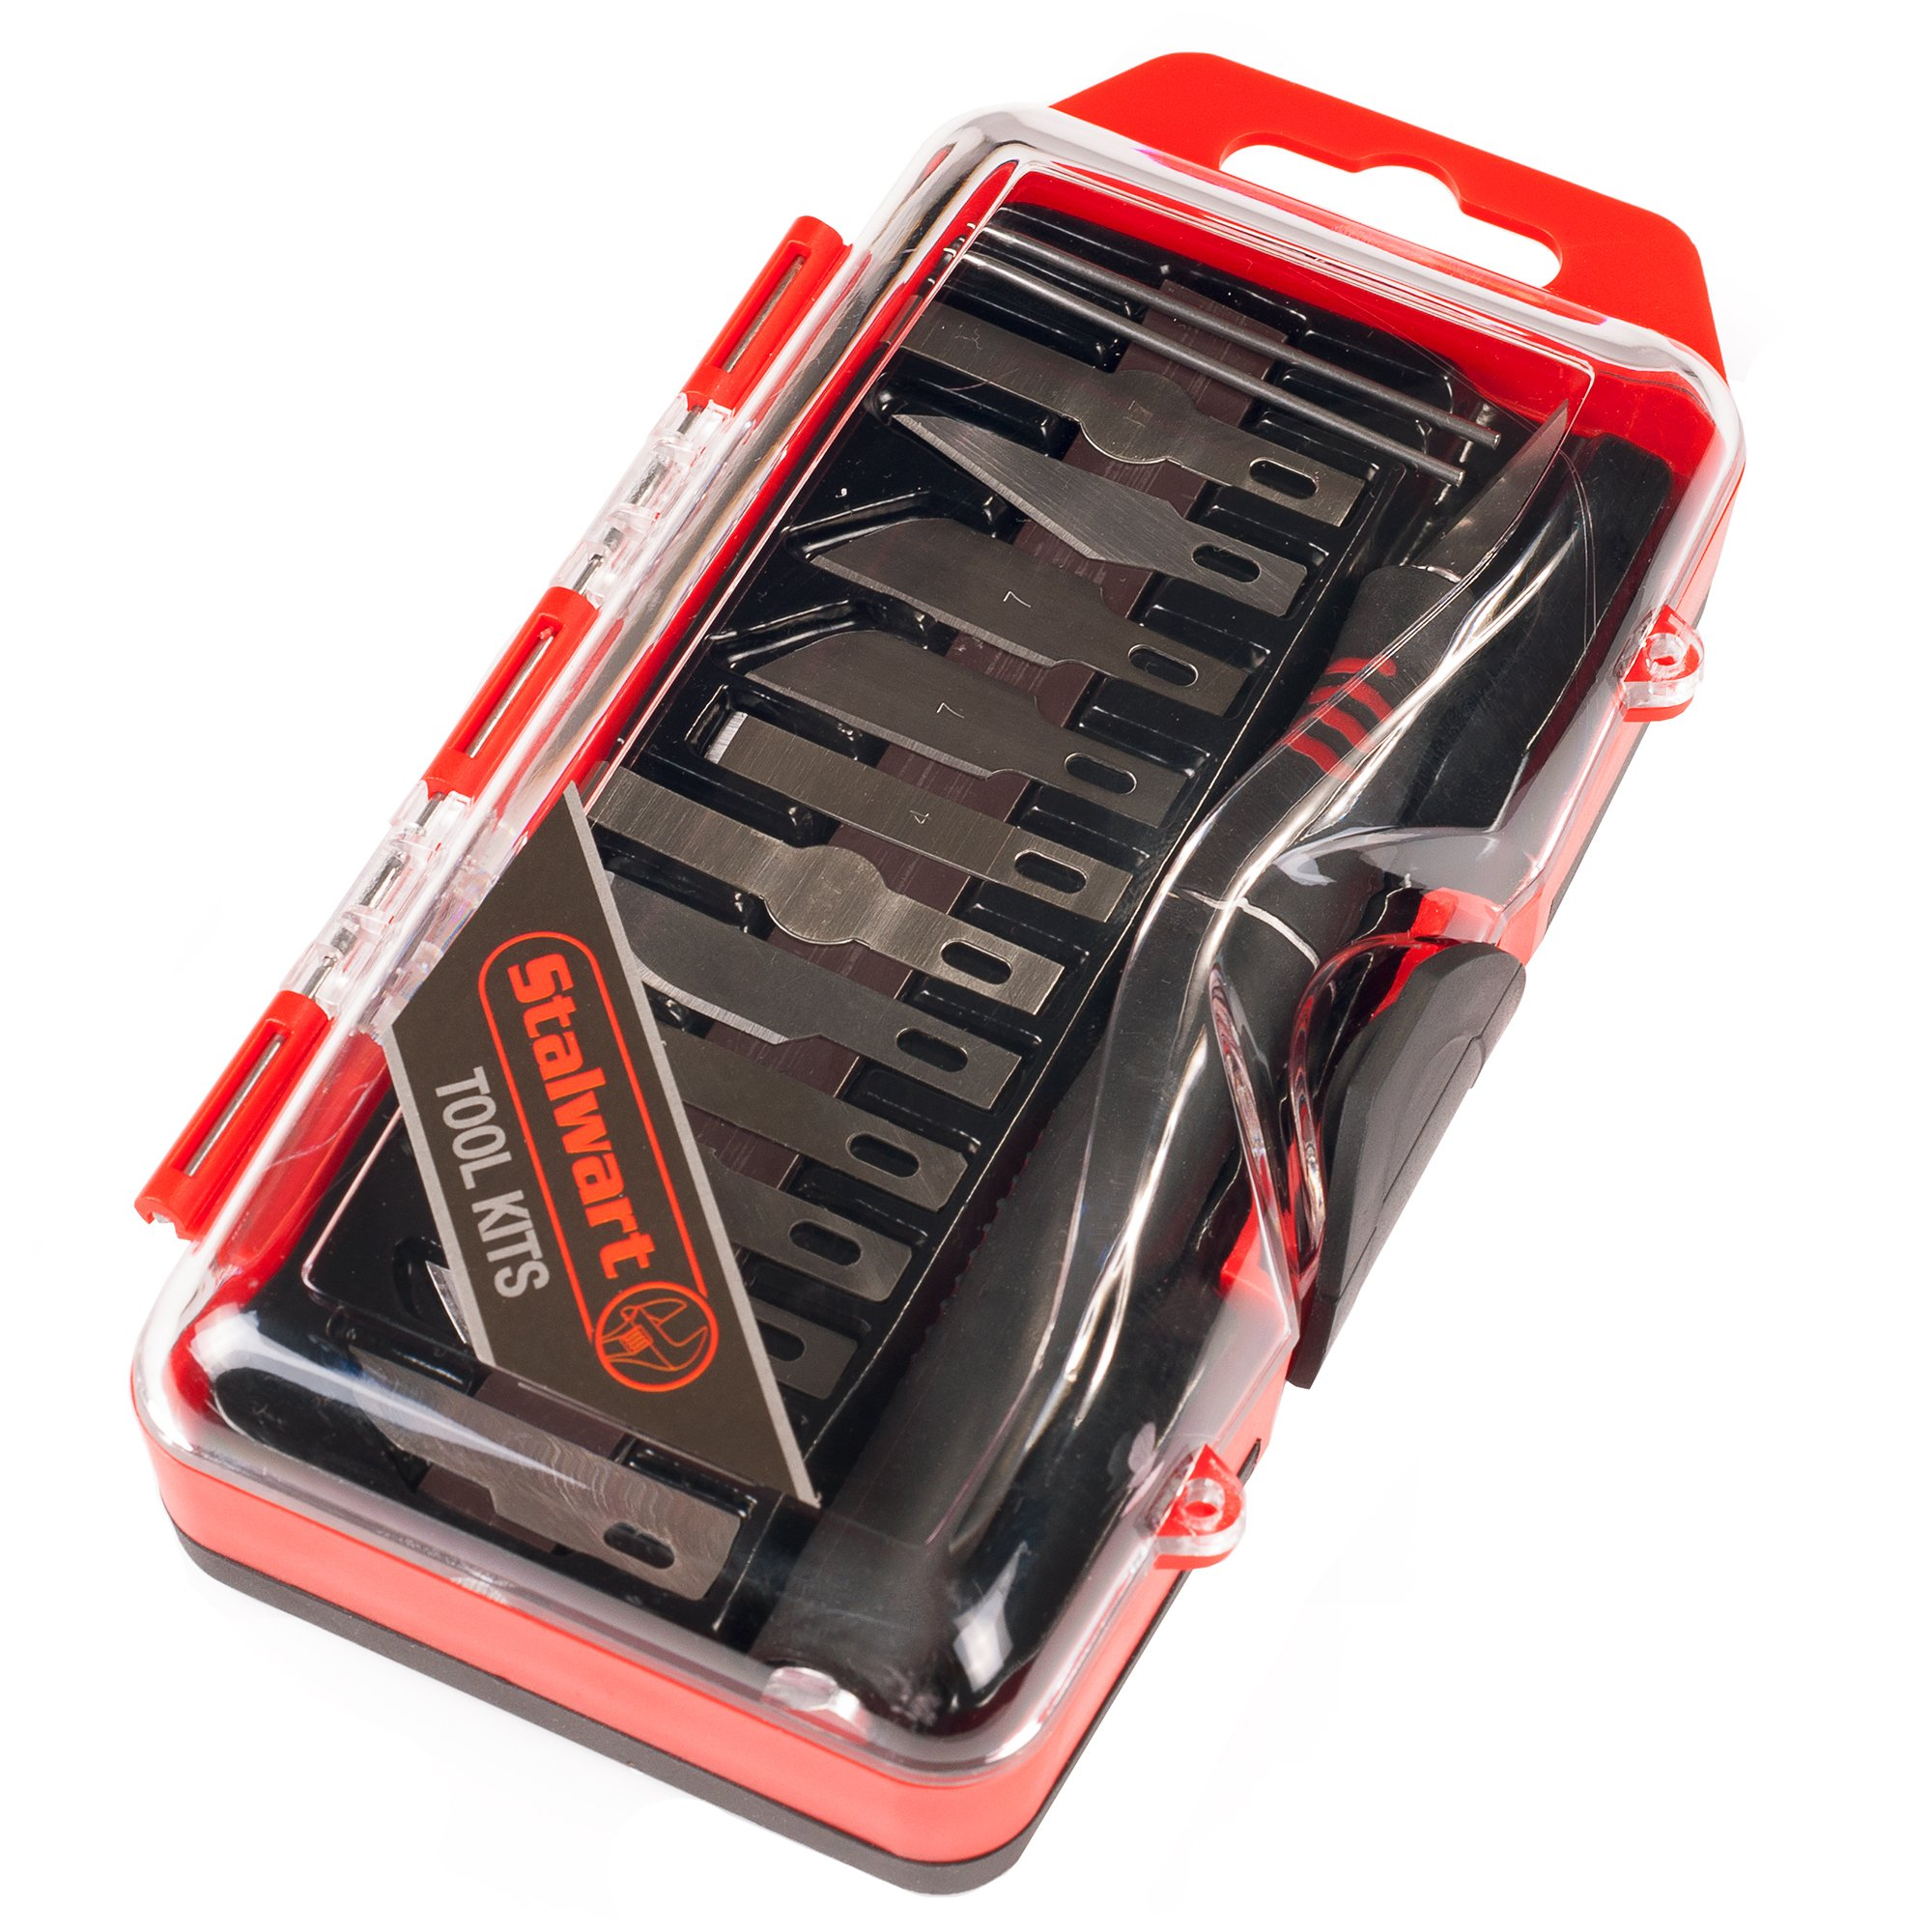 Cheap Scribe Knife Find Deals On Line At Alibabacom Circuit For Sale Get Quotations Stalwart 75 Ht4016 Hobby Set With Needles 16 Piece